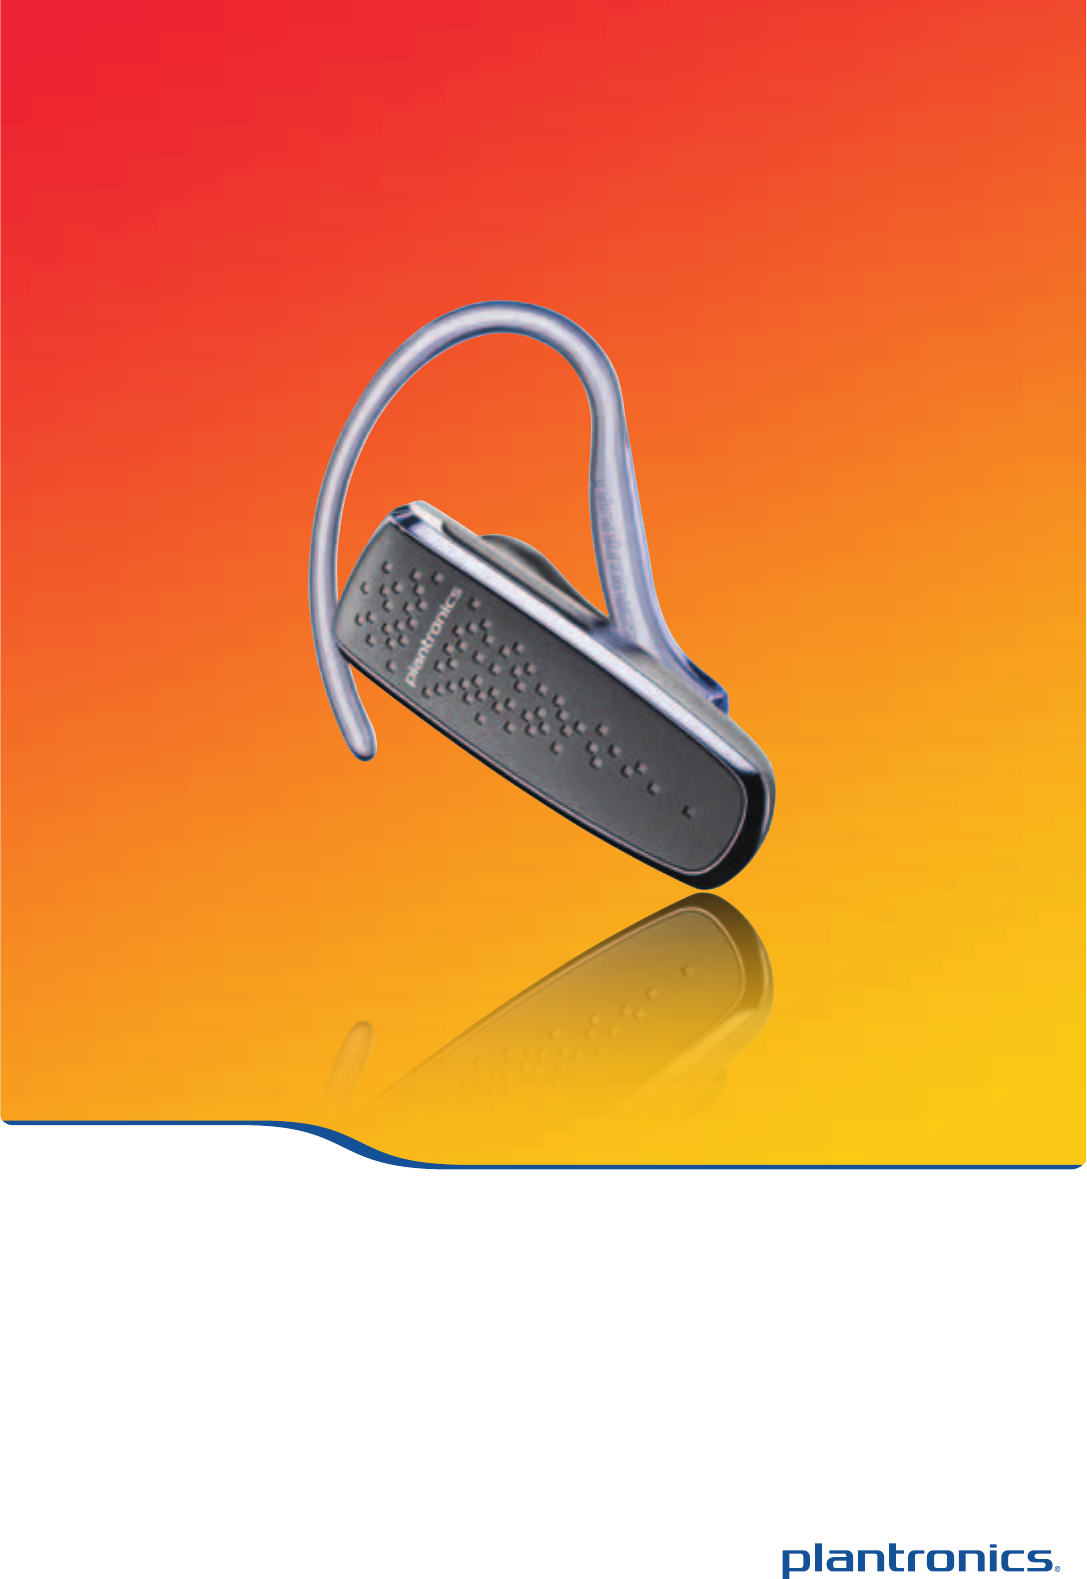 Plantronics M50 Bluetooth Headset Product Sheet